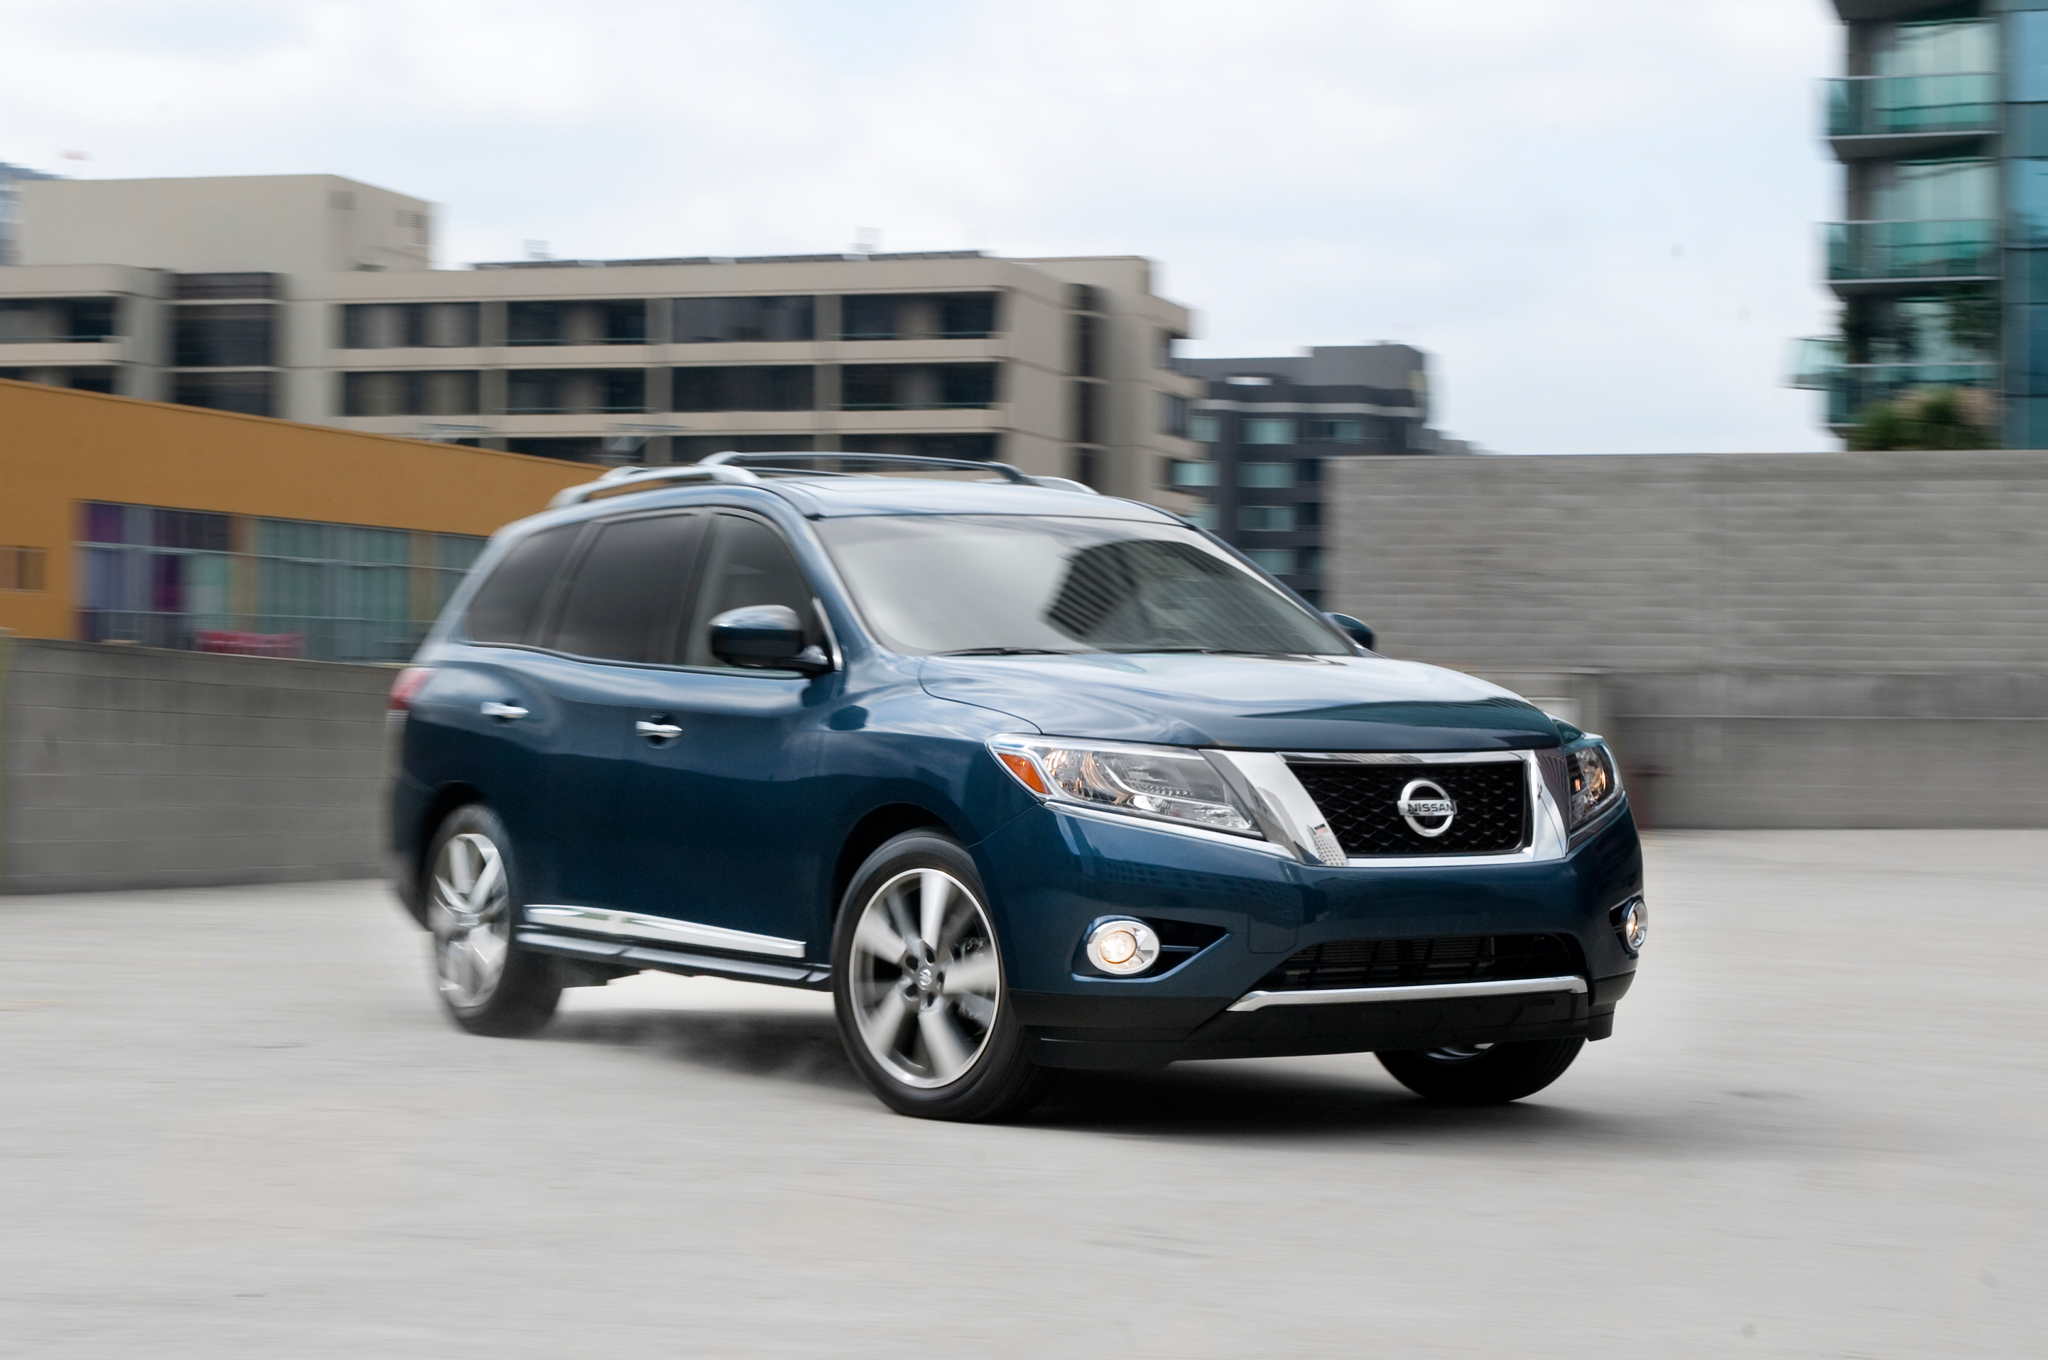 2016 nissan pathfinder iv pictures information and specs auto. Black Bedroom Furniture Sets. Home Design Ideas